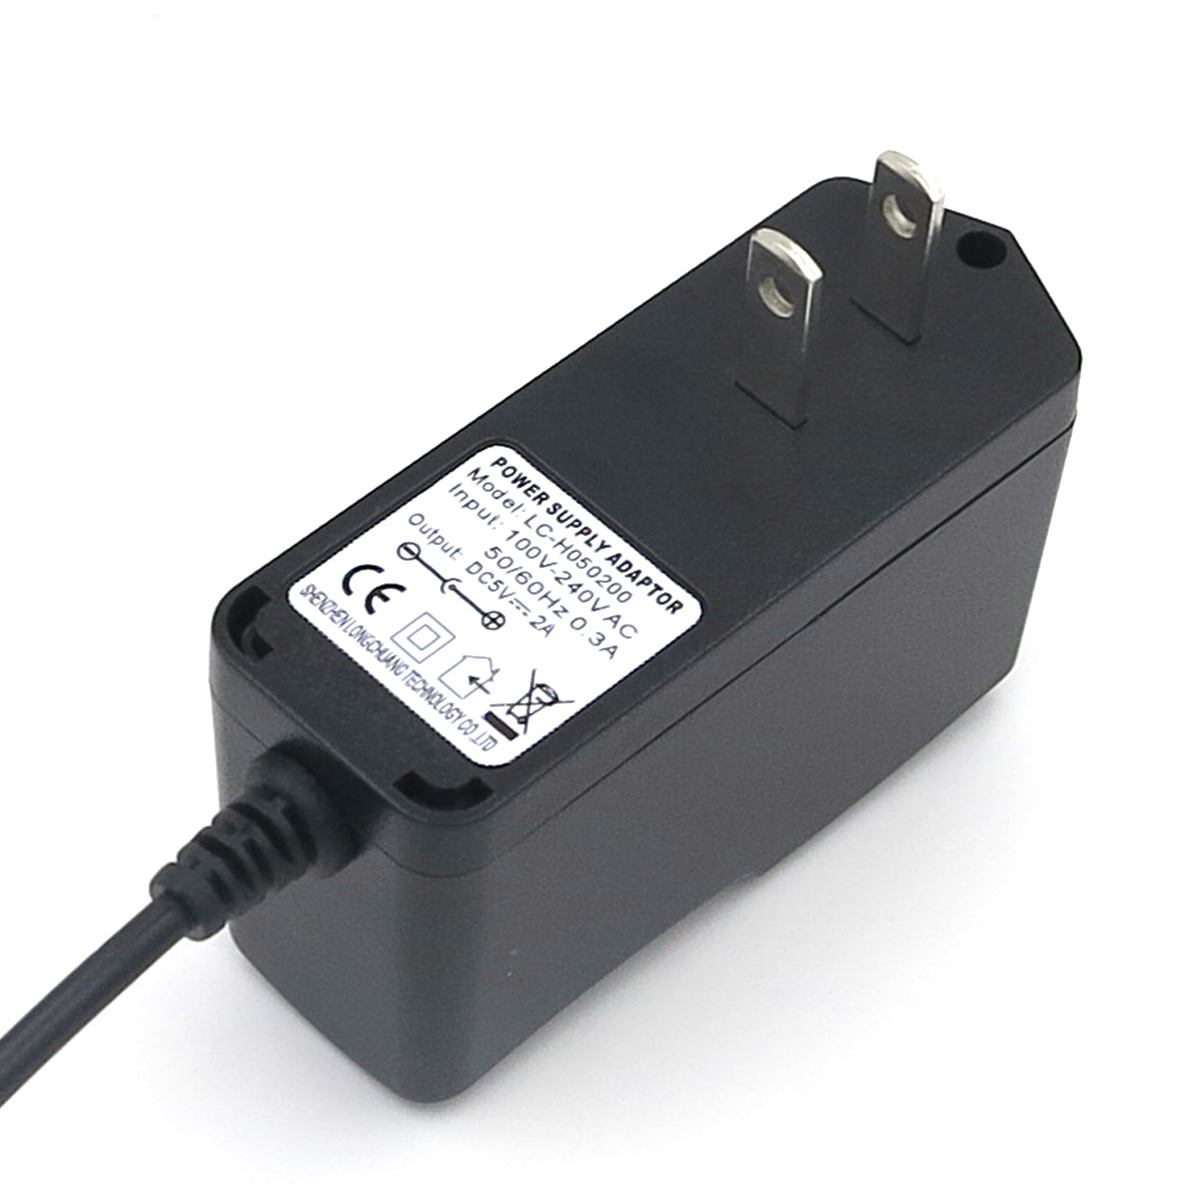 Output 5 V 1A 2A 2.5A 3A High Voltage Power Supply untuk Electrospinning